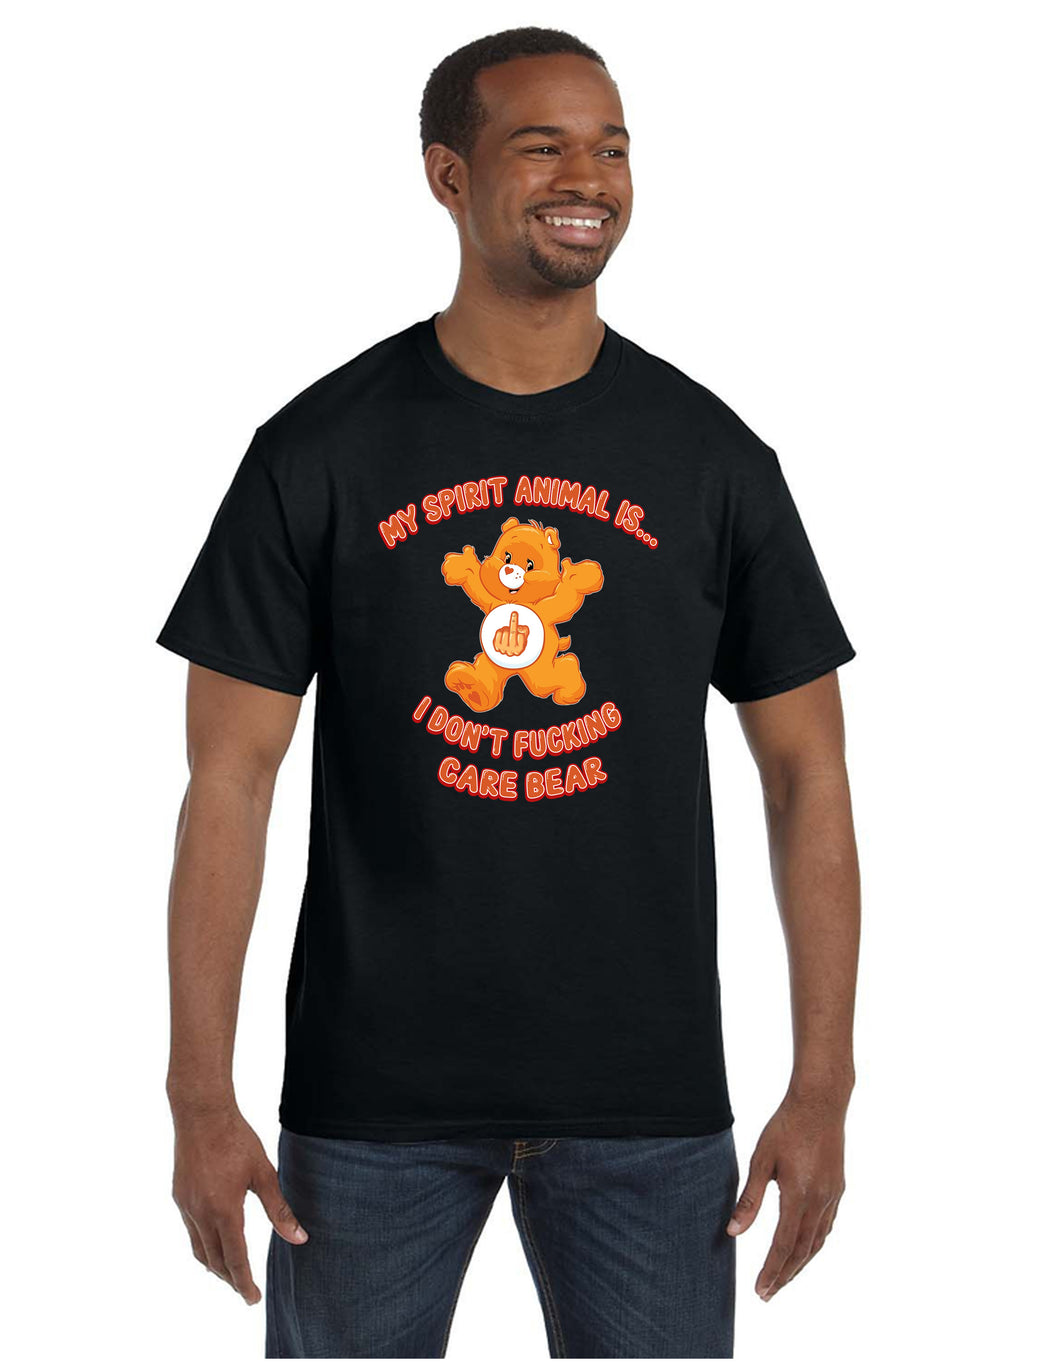 My Spirit Animal Is... I Don't Fucking Care Bear T-shirt